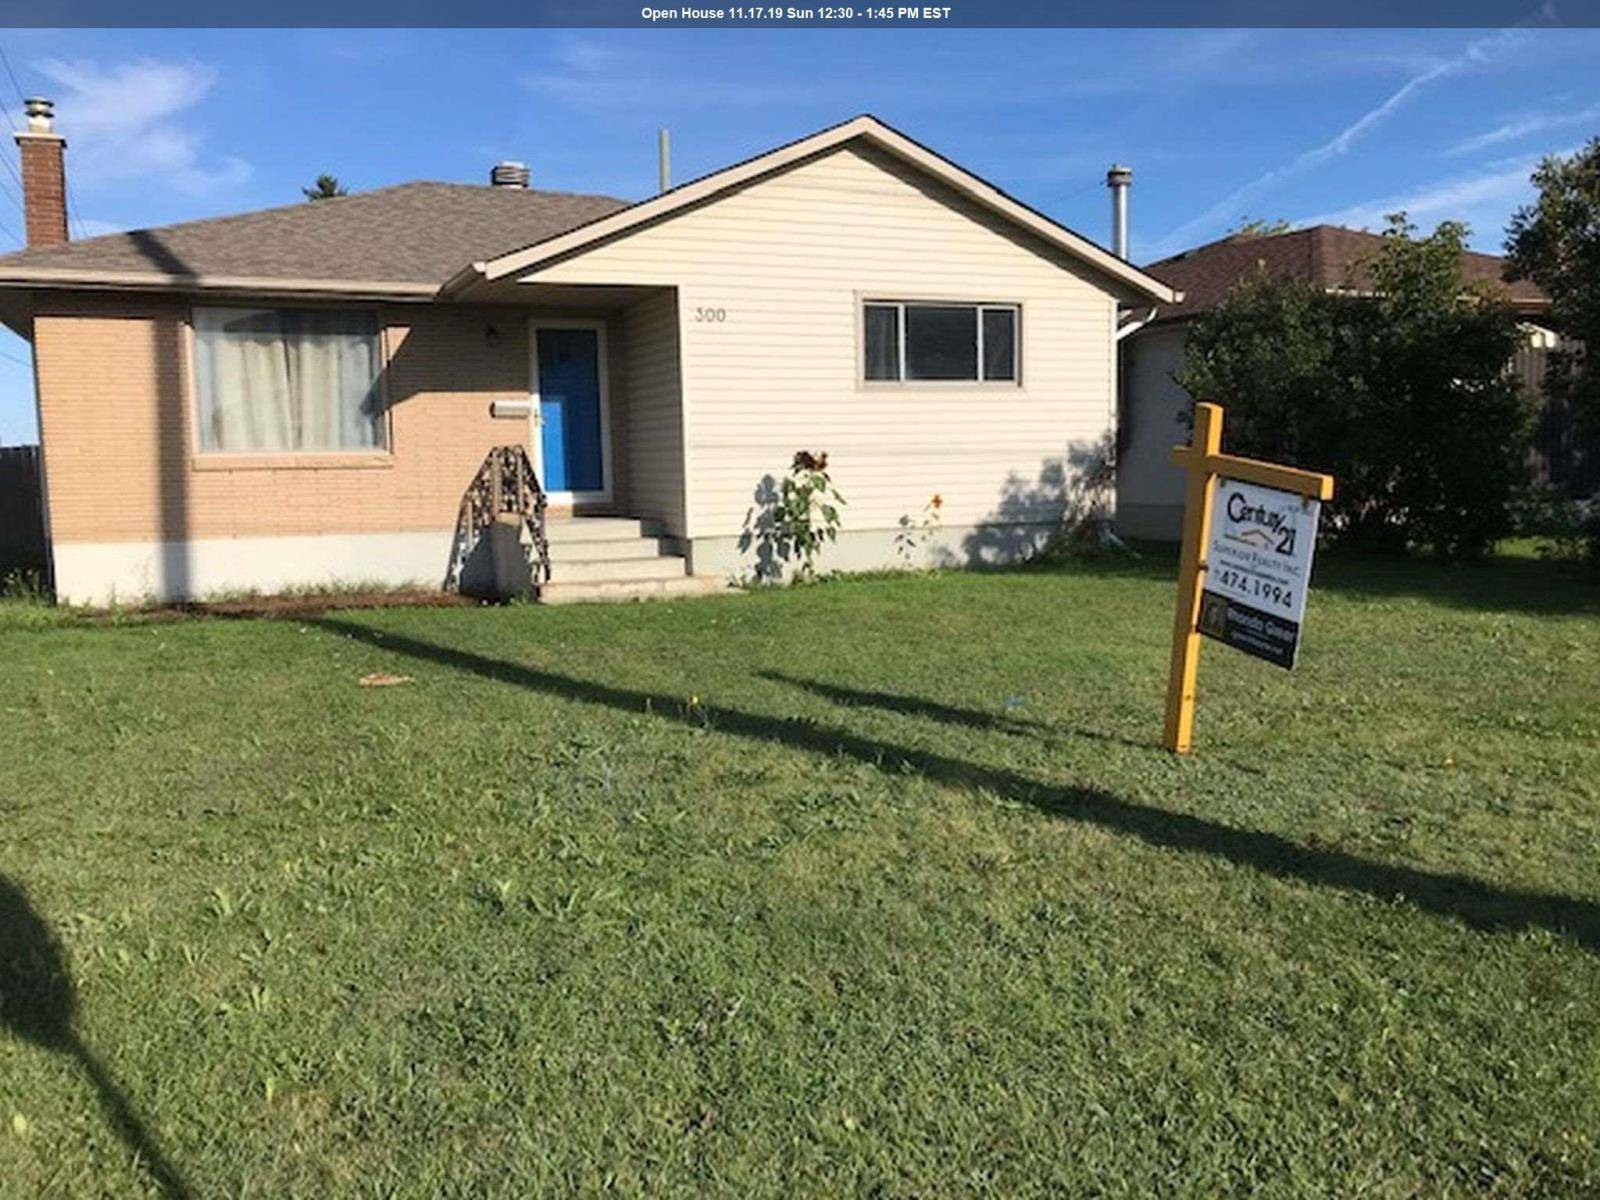 House for sale at 300 Leland Ave S Thunder Bay Ontario - MLS: TB192985